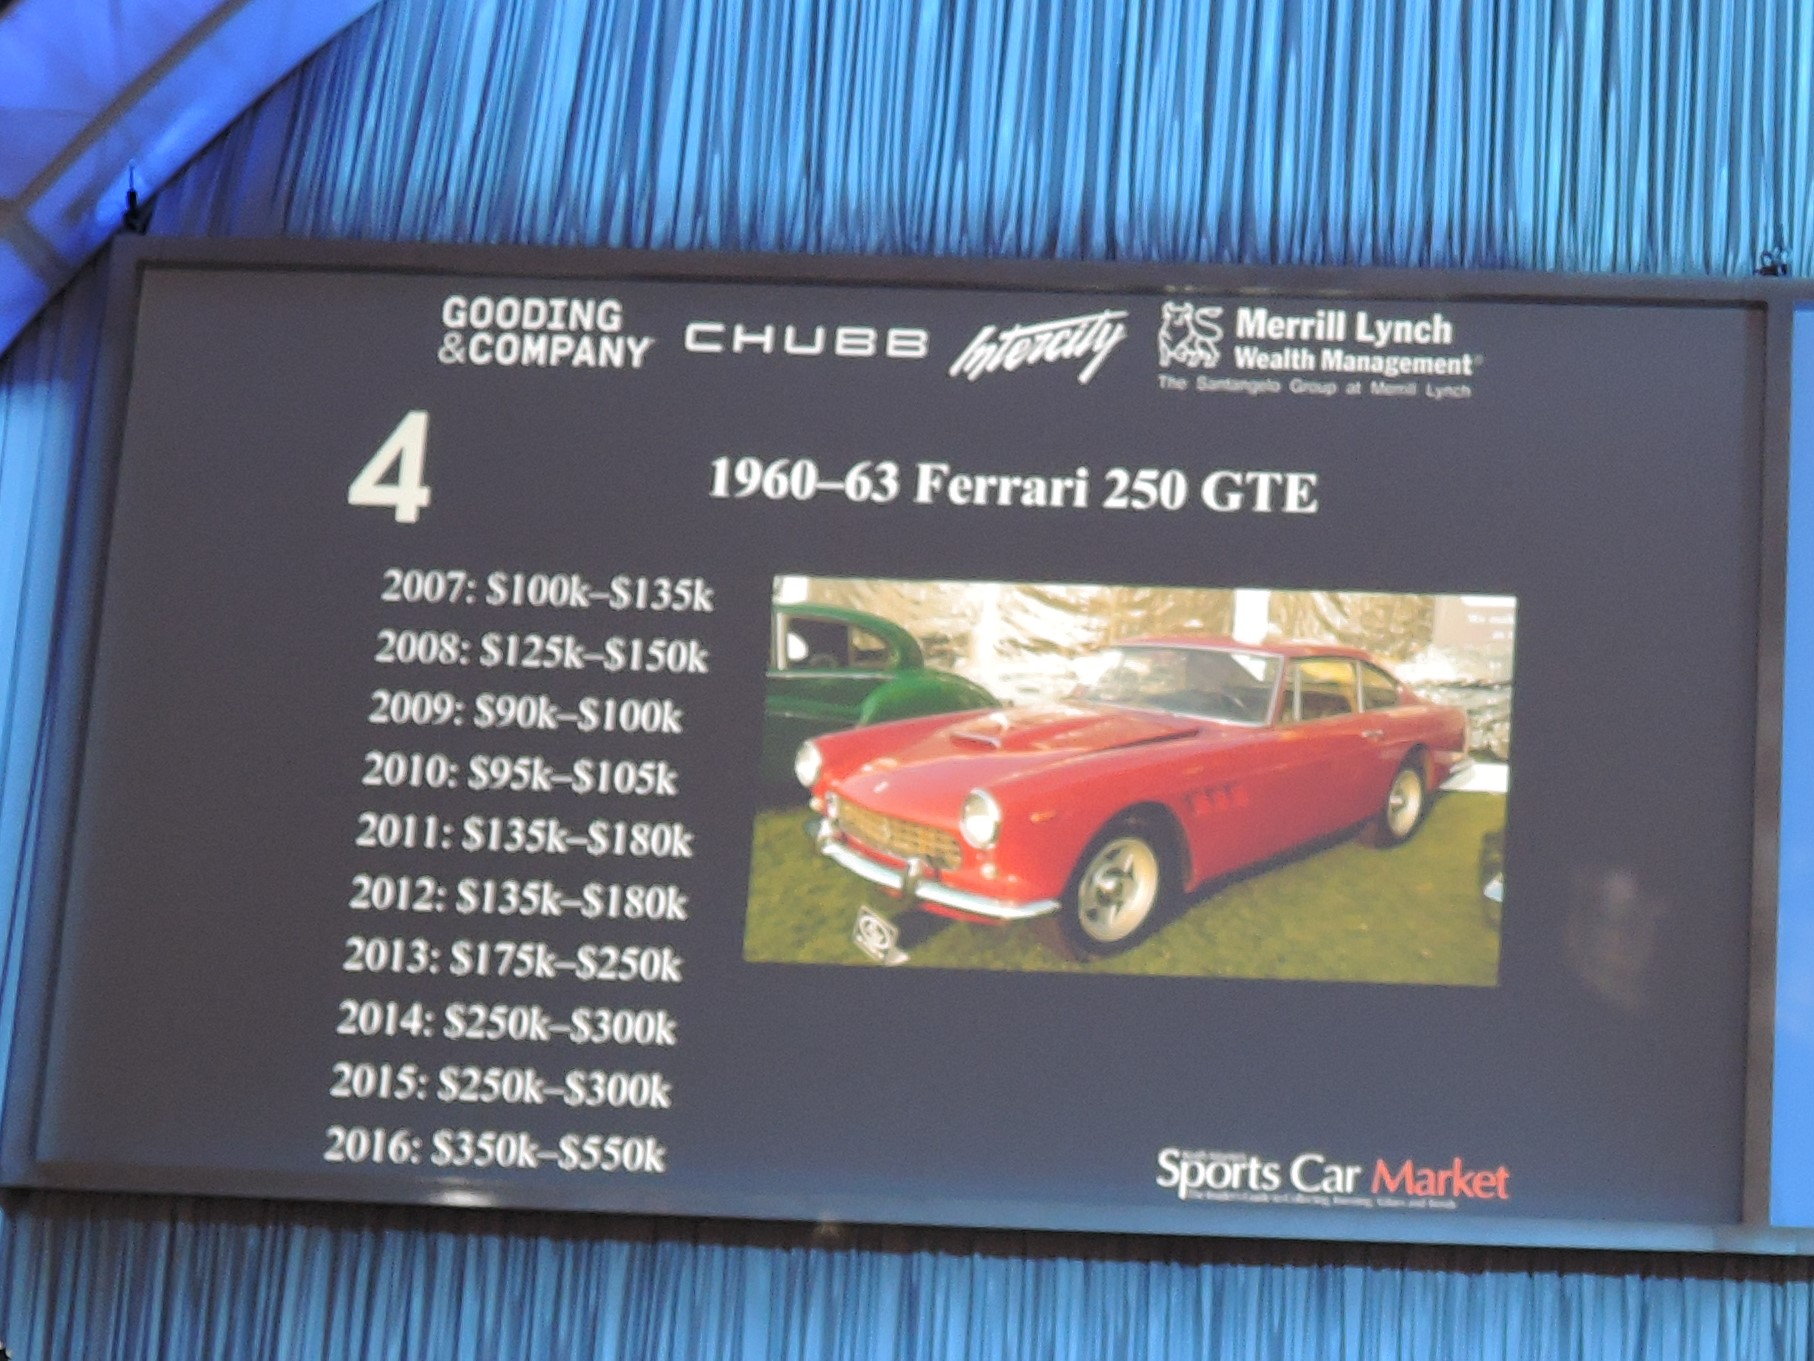 Ferrari 250 GT/E; Monterey 2016; Sports Car Market Insider's Seminar and Auctions